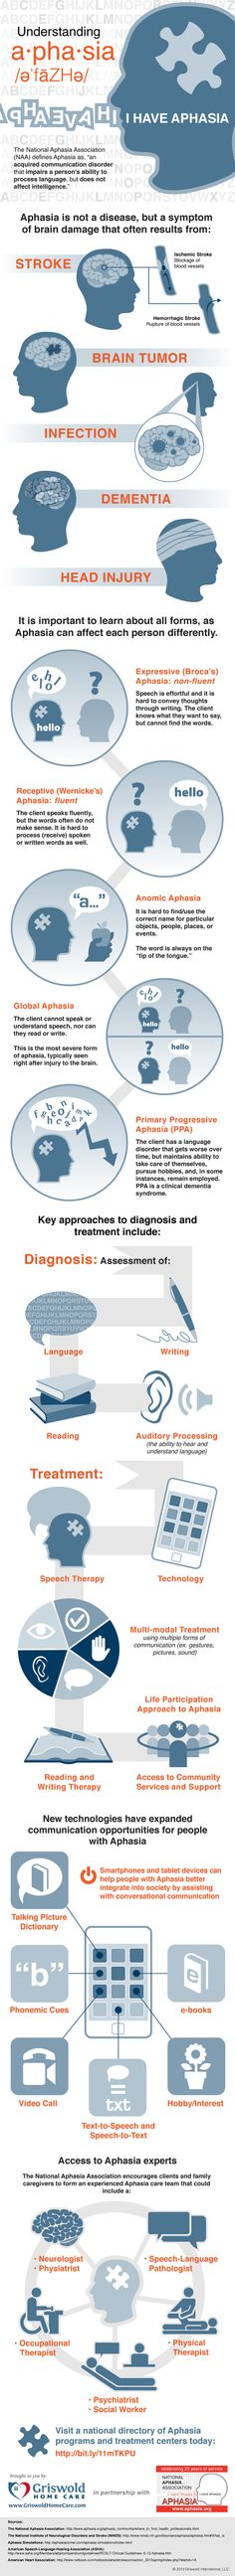 We hope that this educational infographic helps drive positive outcomes for all people living with Aphasia, and those who support them through advocacy, treatment and education. #aphasia #infographic